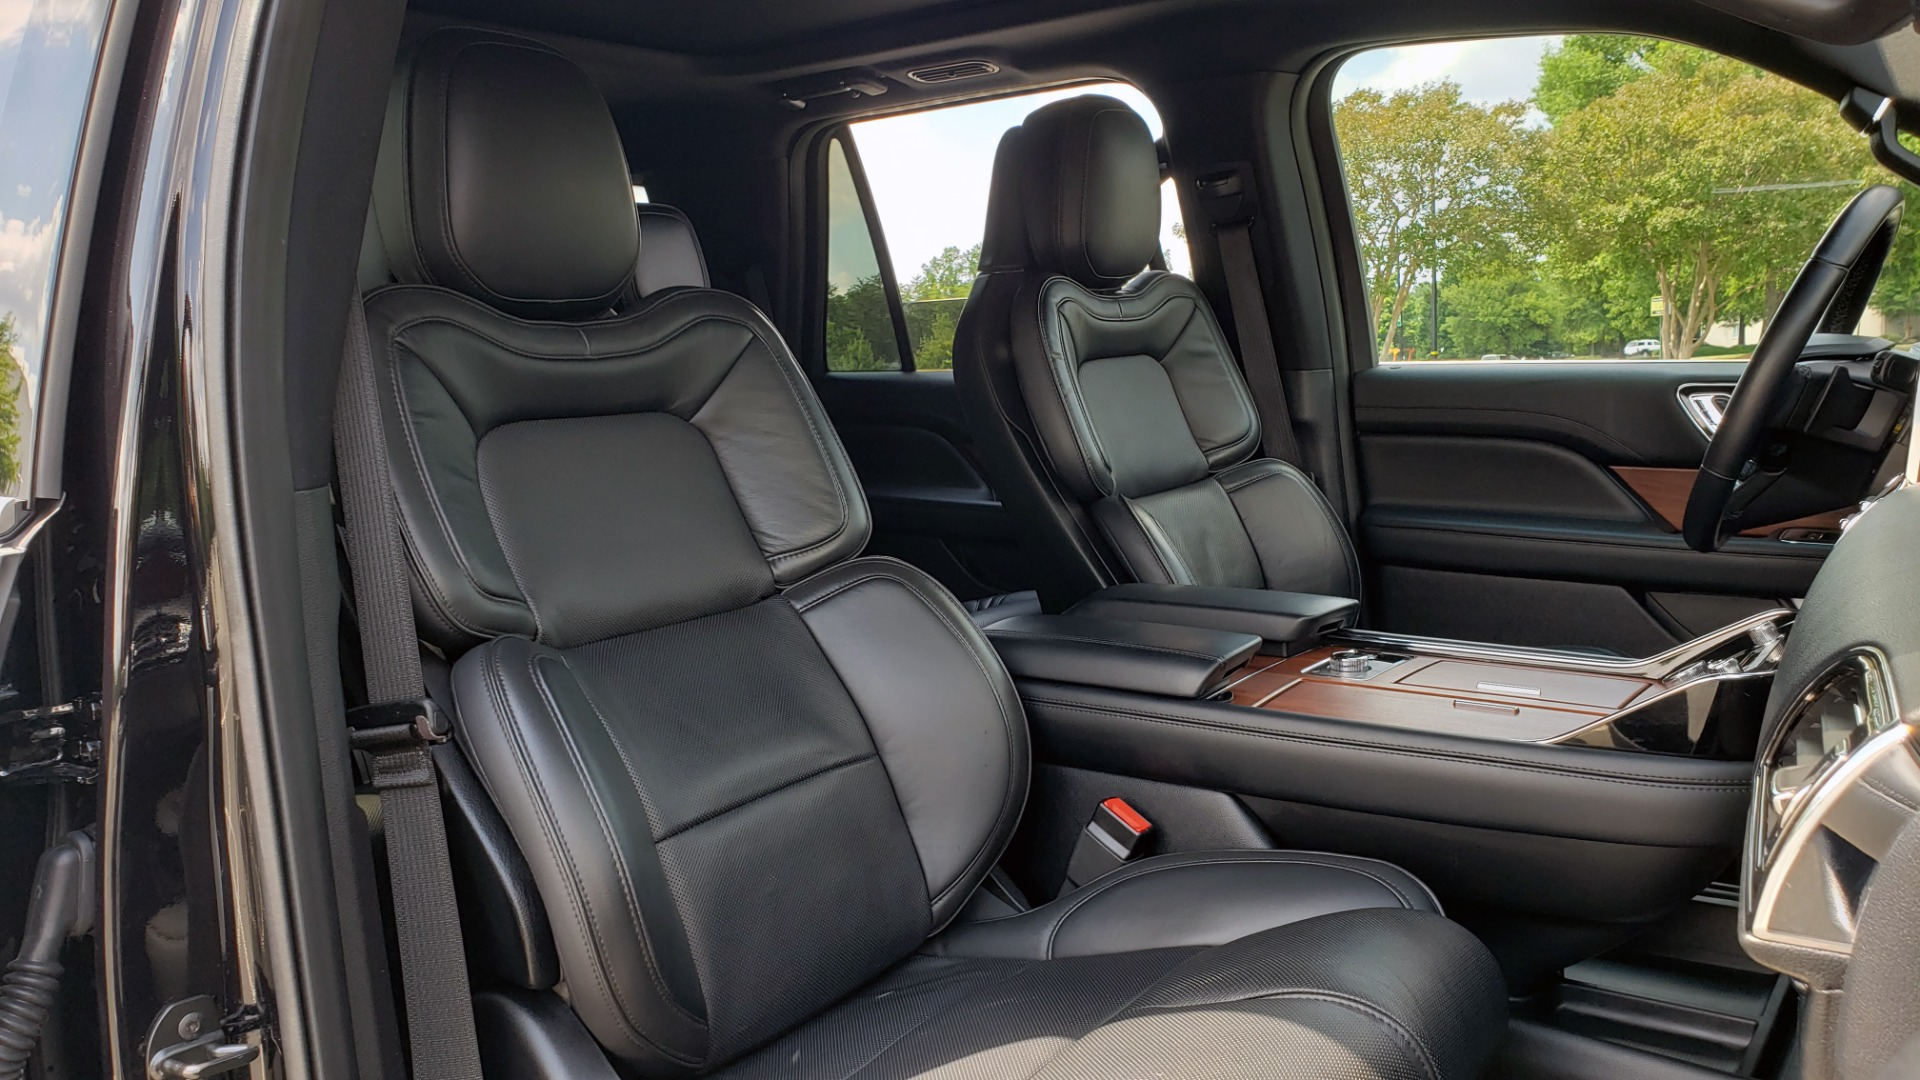 Used 2019 Lincoln NAVIGATOR RESERVE 4X4 / NAV / PANO-ROOF / REVEL ULTIMA AUDIO / 3-ROW / REARVIEW for sale $74,795 at Formula Imports in Charlotte NC 28227 77